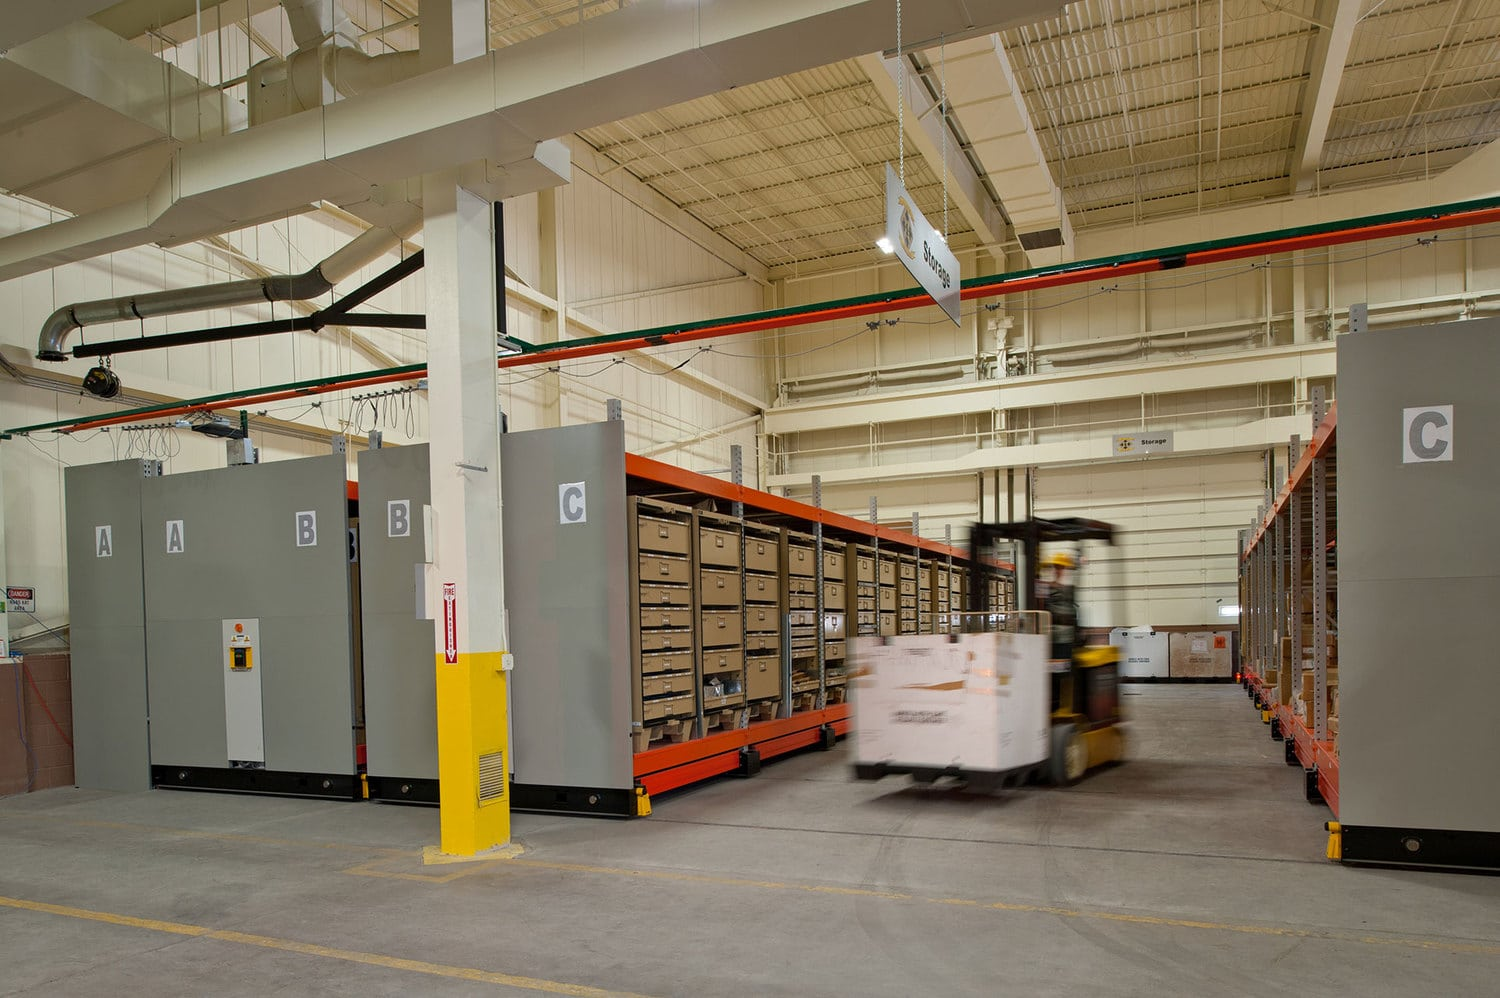 Forklift moving supplies from ActivRAC industrial mobile shelving system at Fort Carson